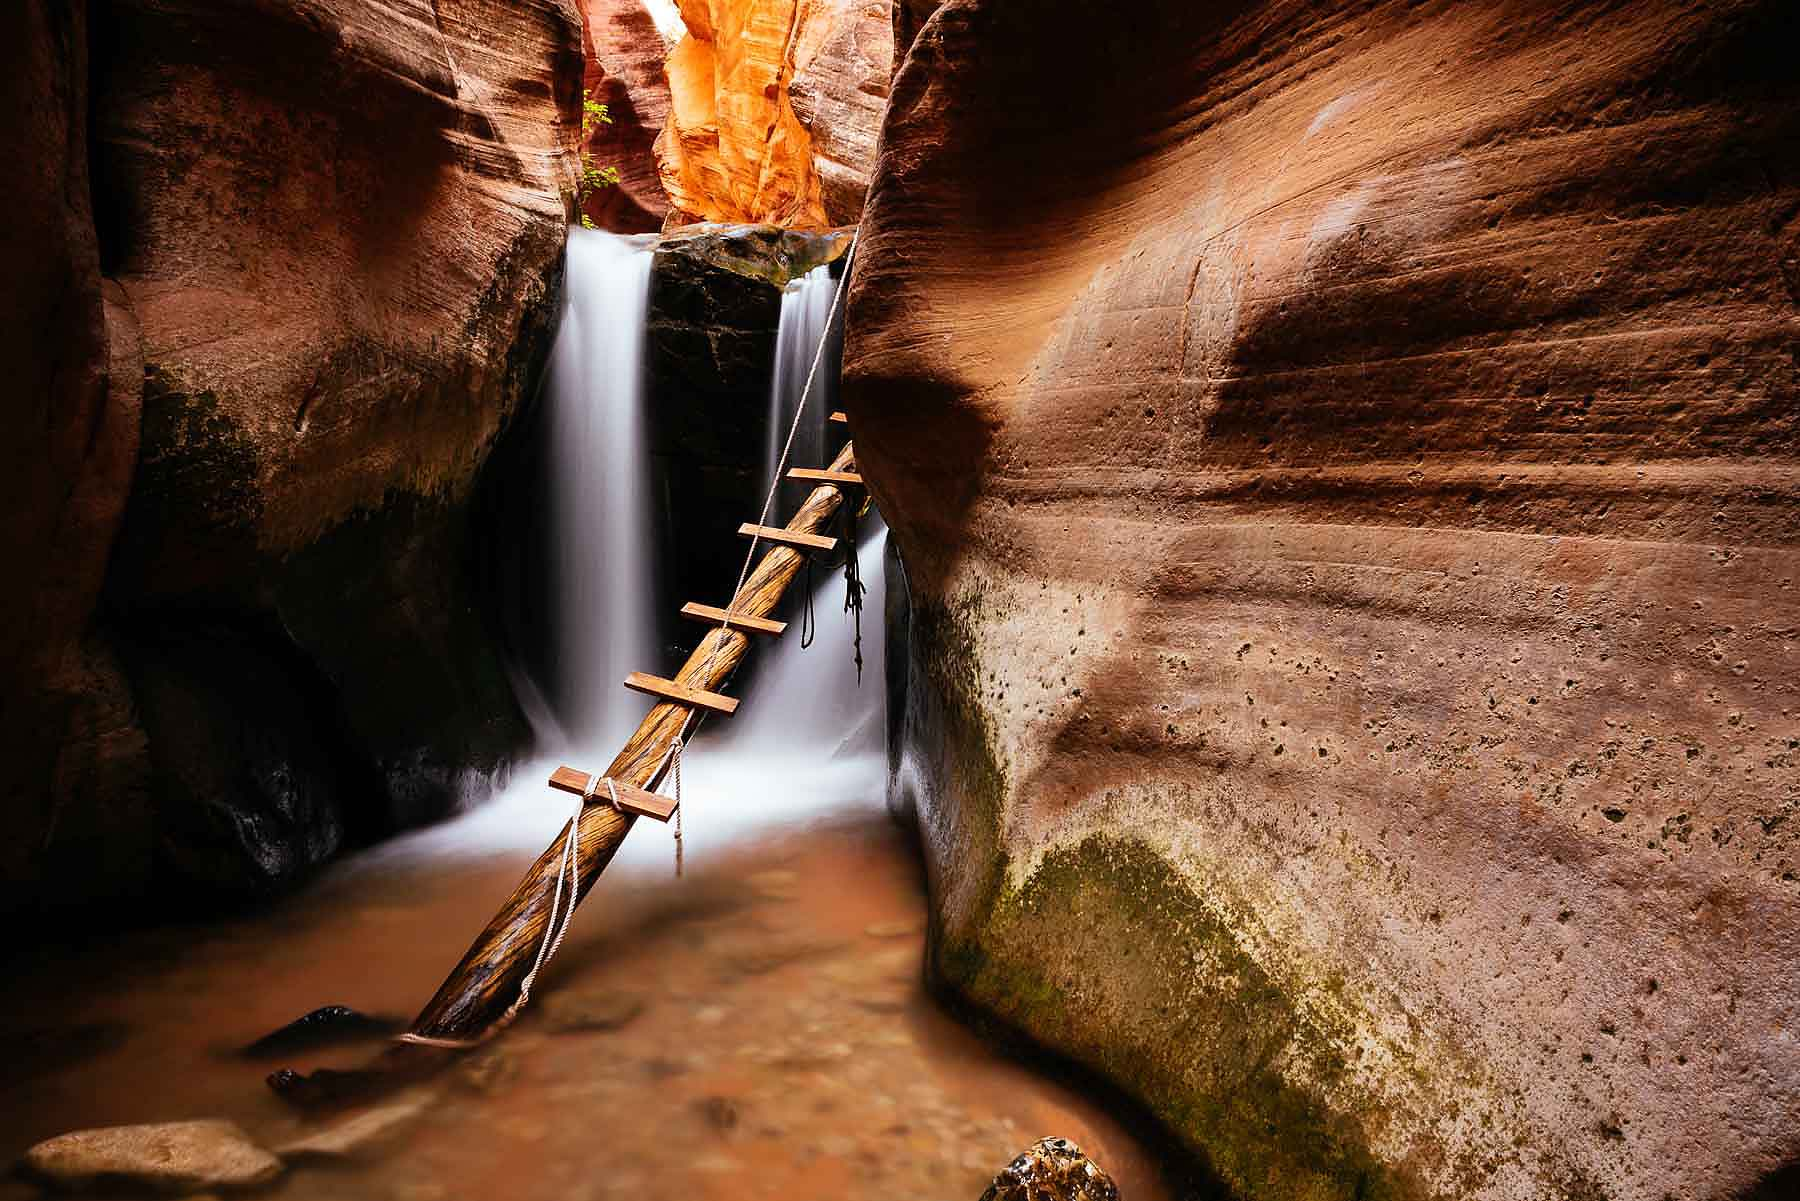 Kanarra-Creek-Canyon-Hike-Utah-USA-Landscape-Photography